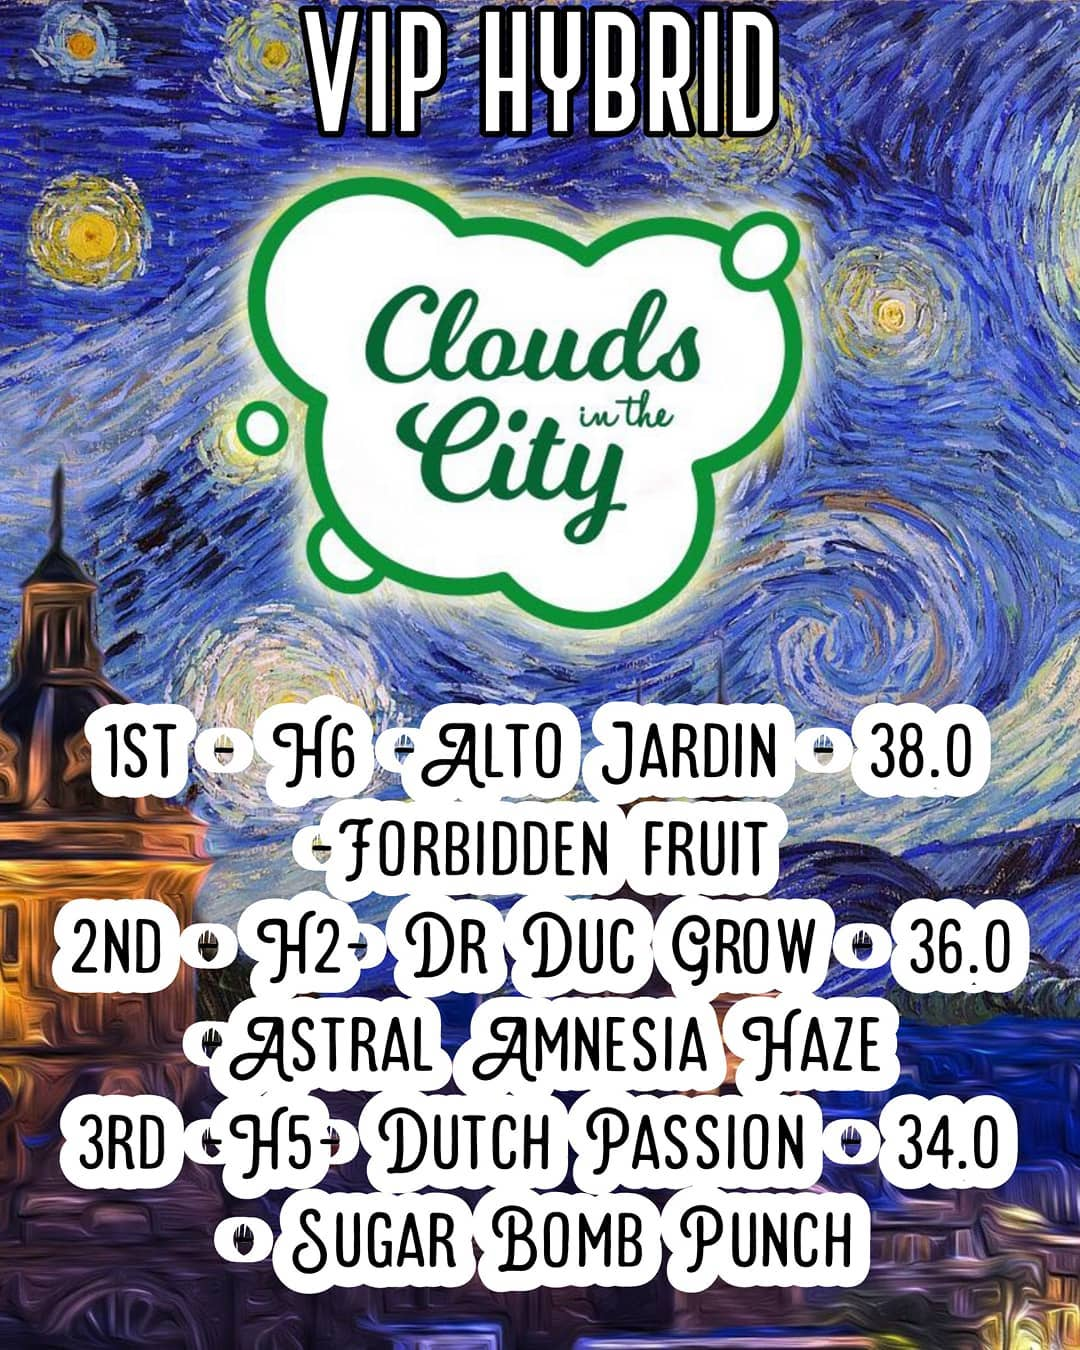 Sugar Bomb Punch 3rd prize at Clouds in The City 2020